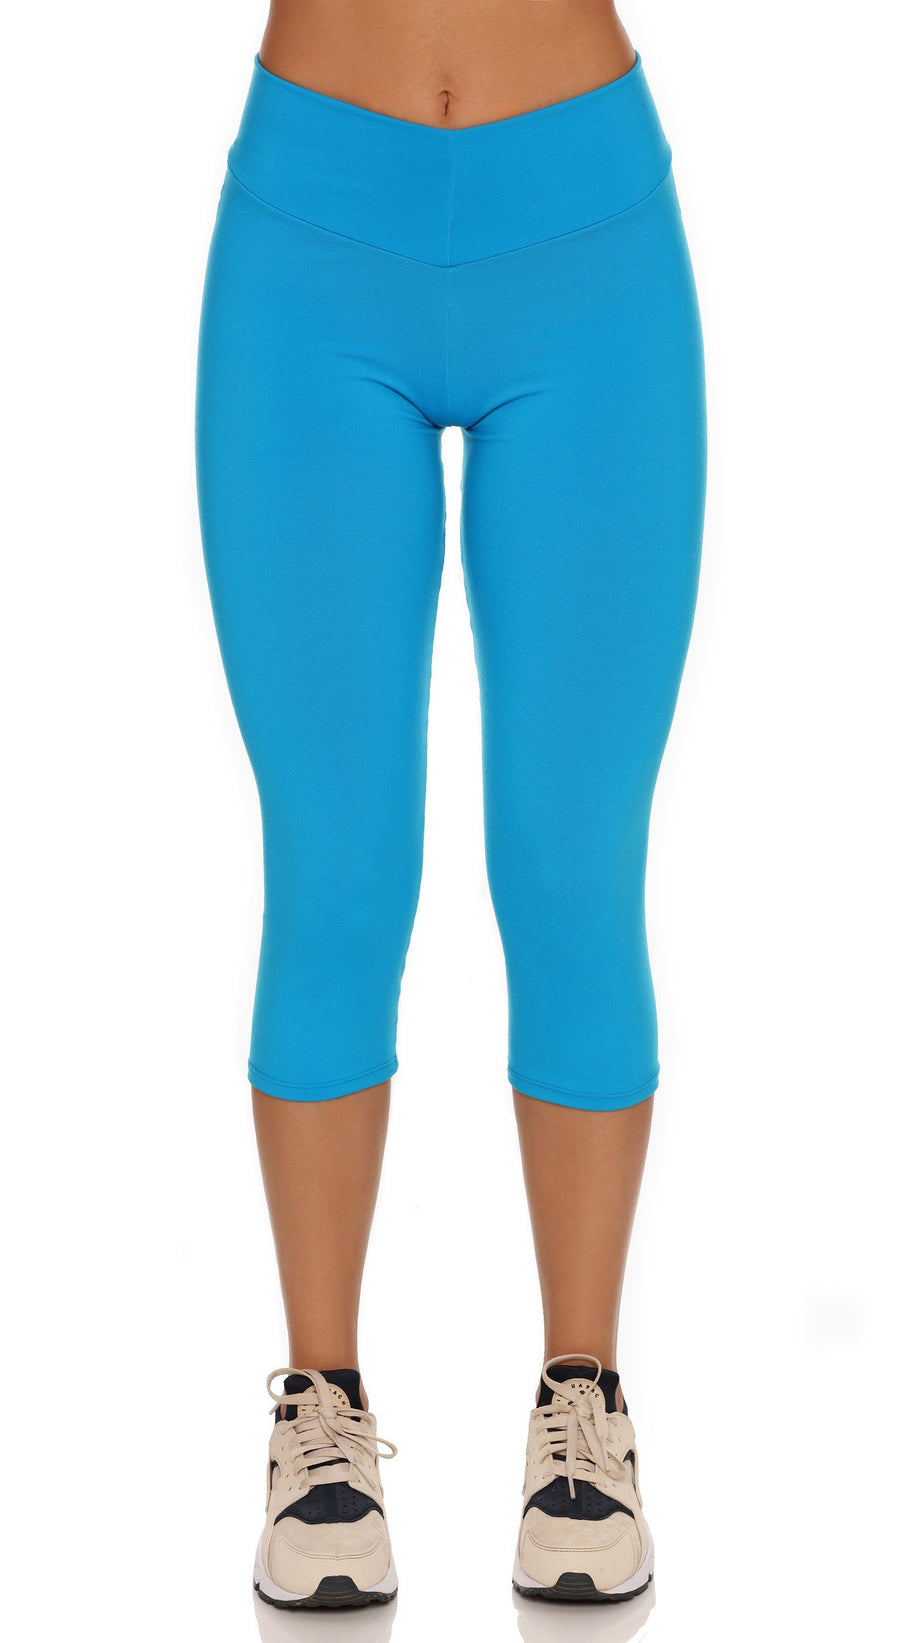 Brazilian Workout Capri Pants - Scrunch Booty Lift! Compression Deep Sky Blue